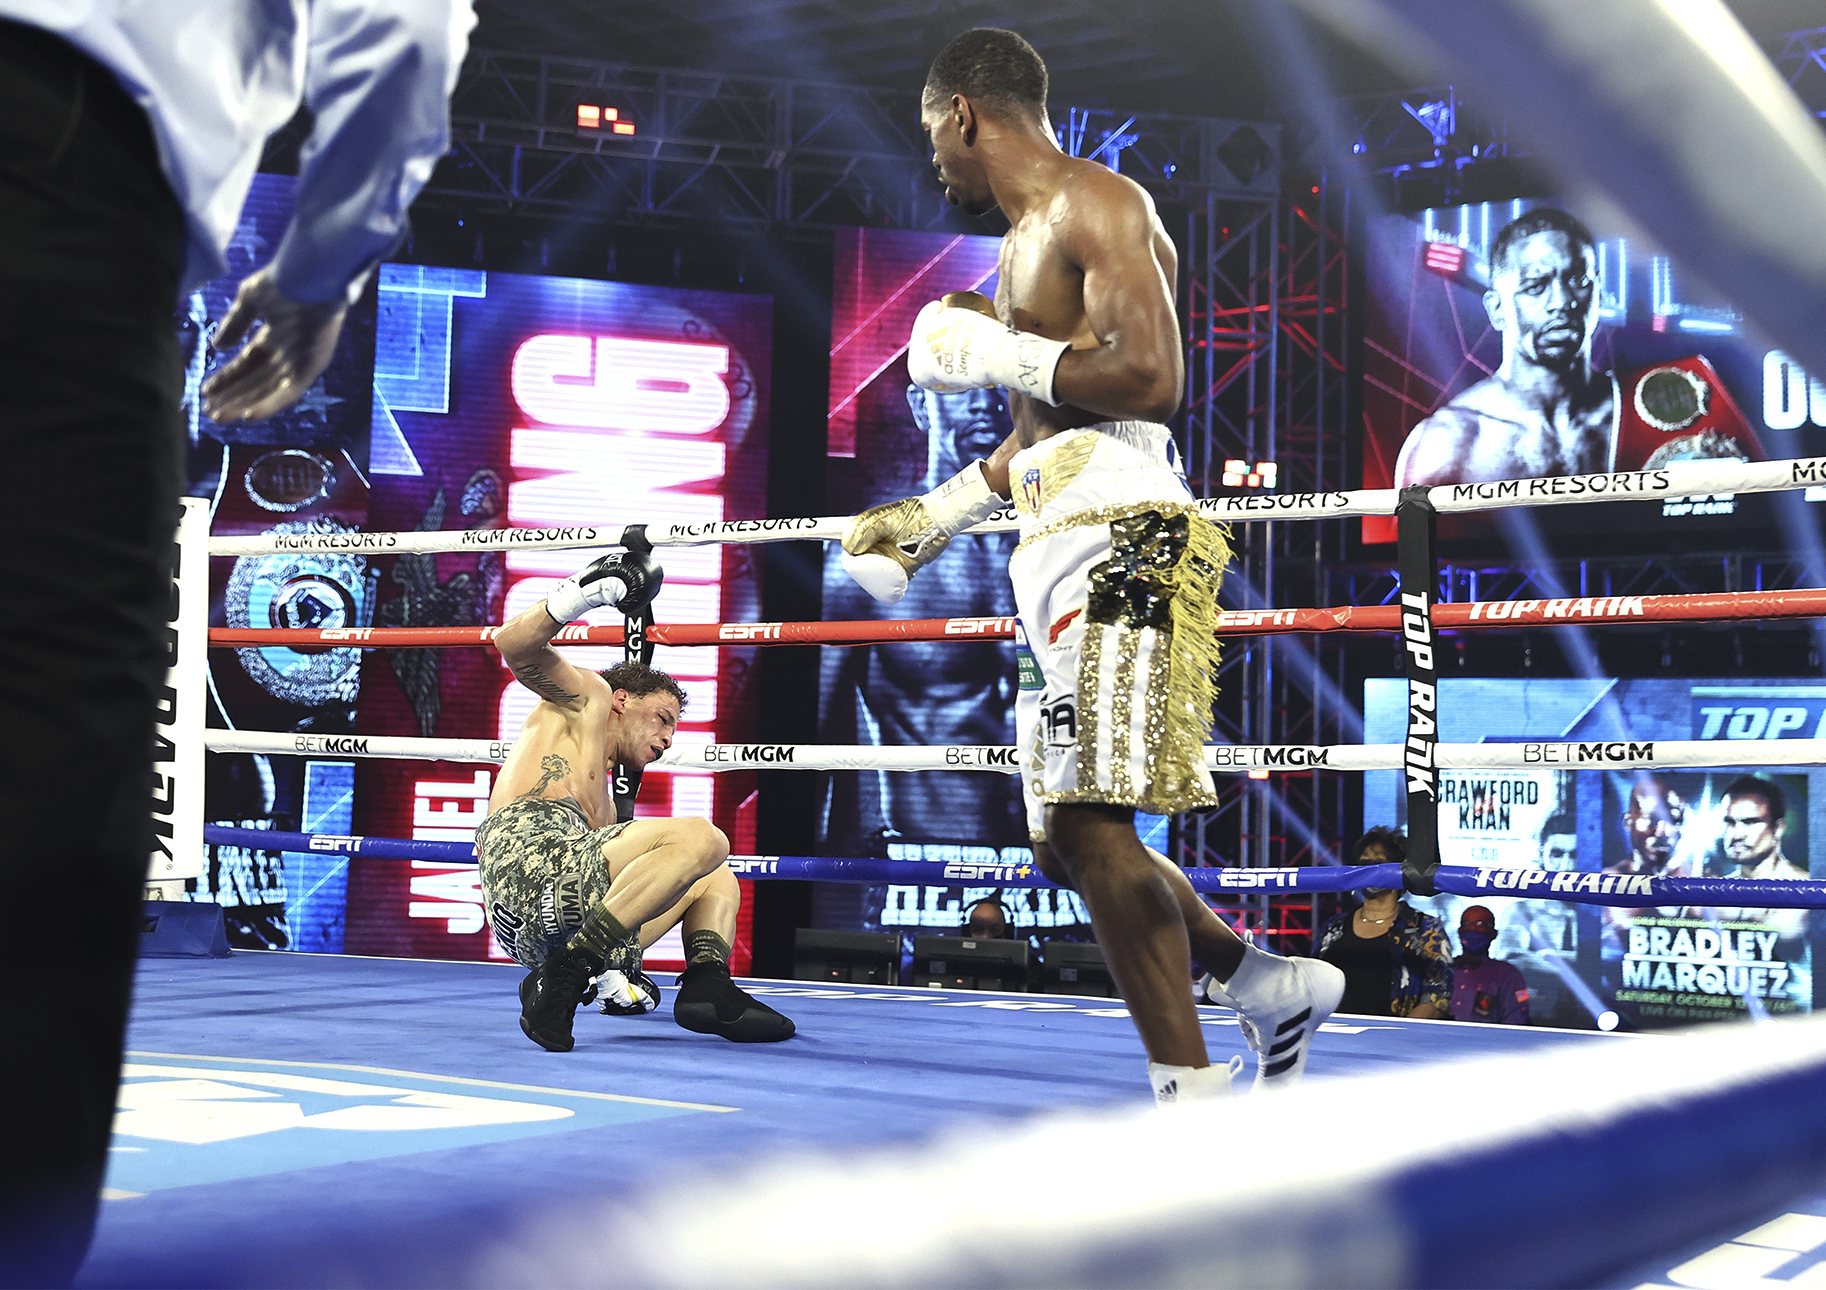 Jamel - ESPN+ Boxing Results: Jamel Herring Wins Via Ugly Disqualification Against Jonathan Oquendo